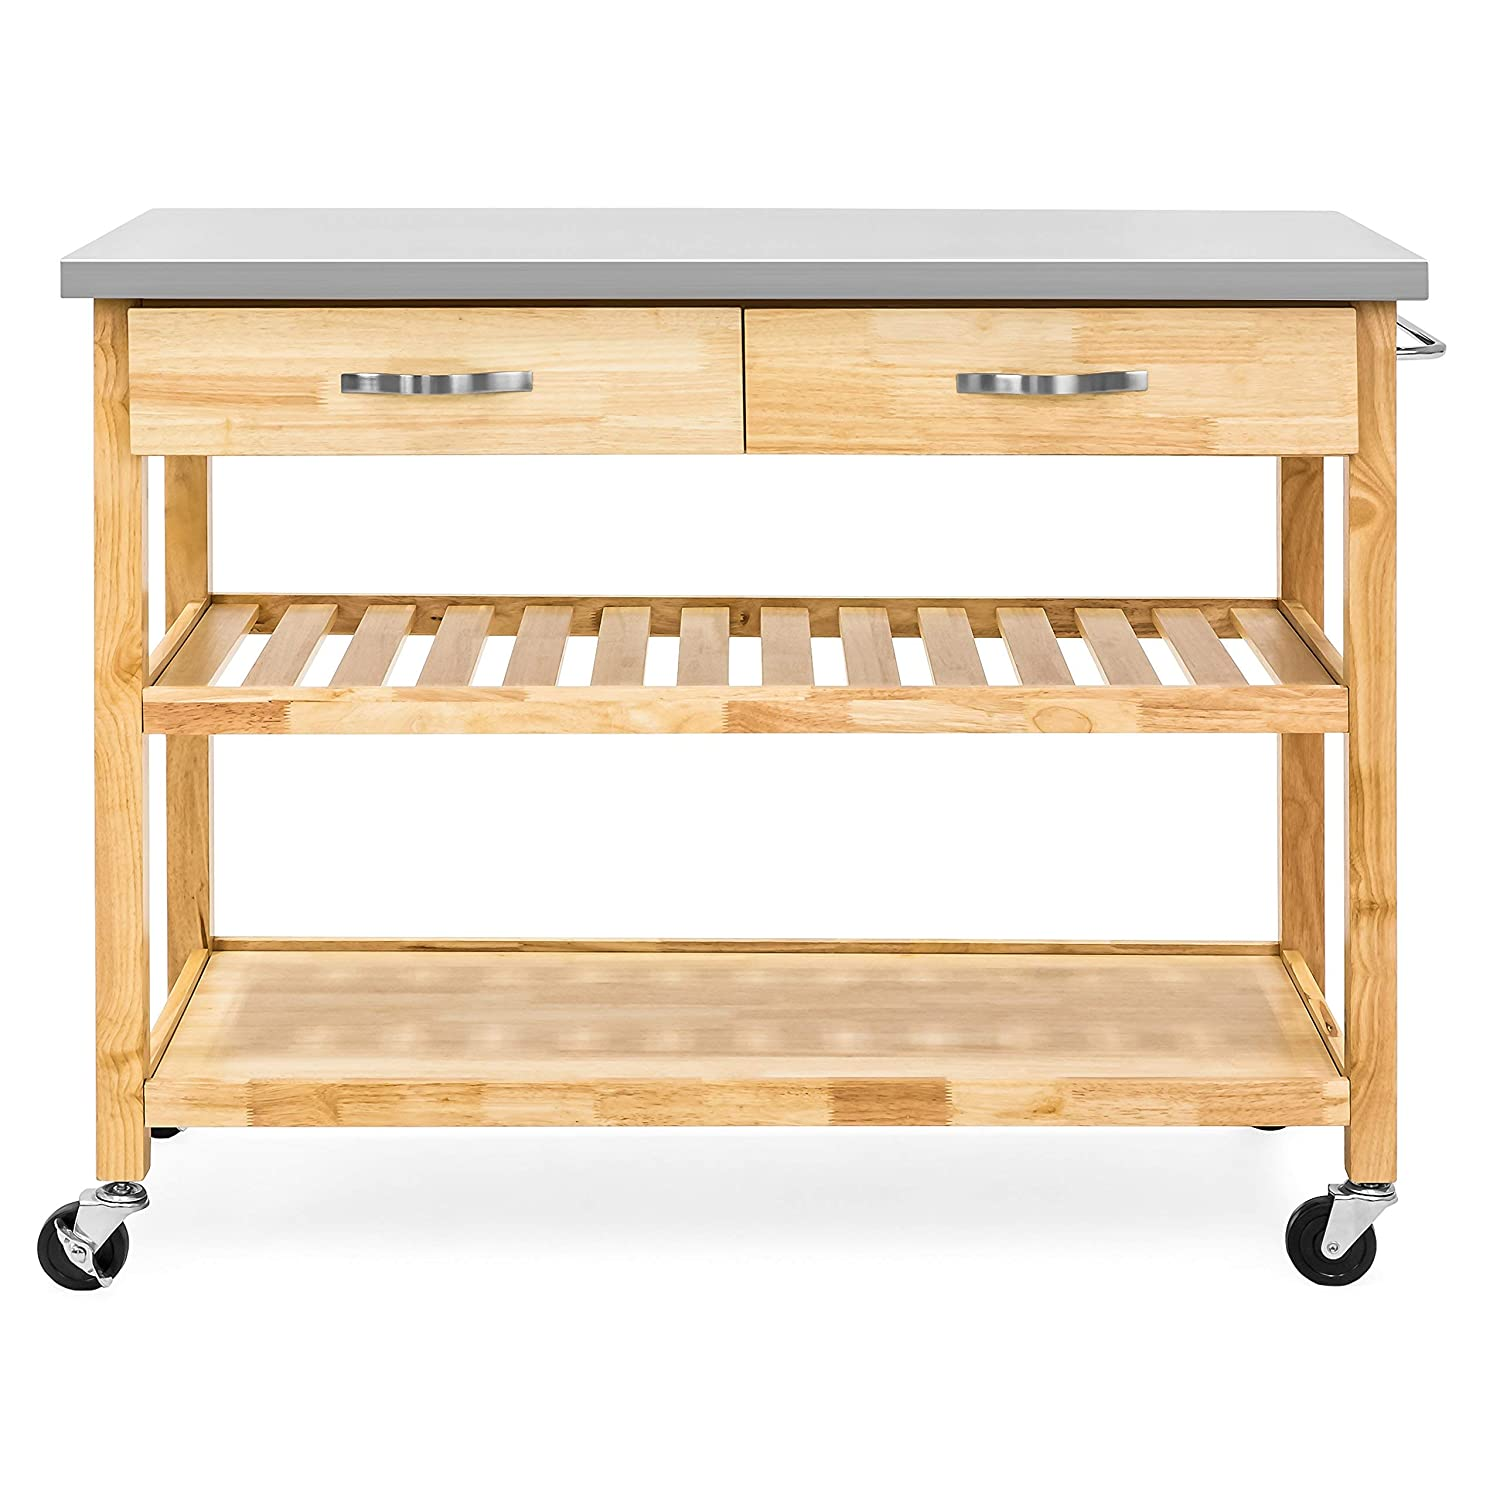 Rolling wood and steel kitchen utility cart